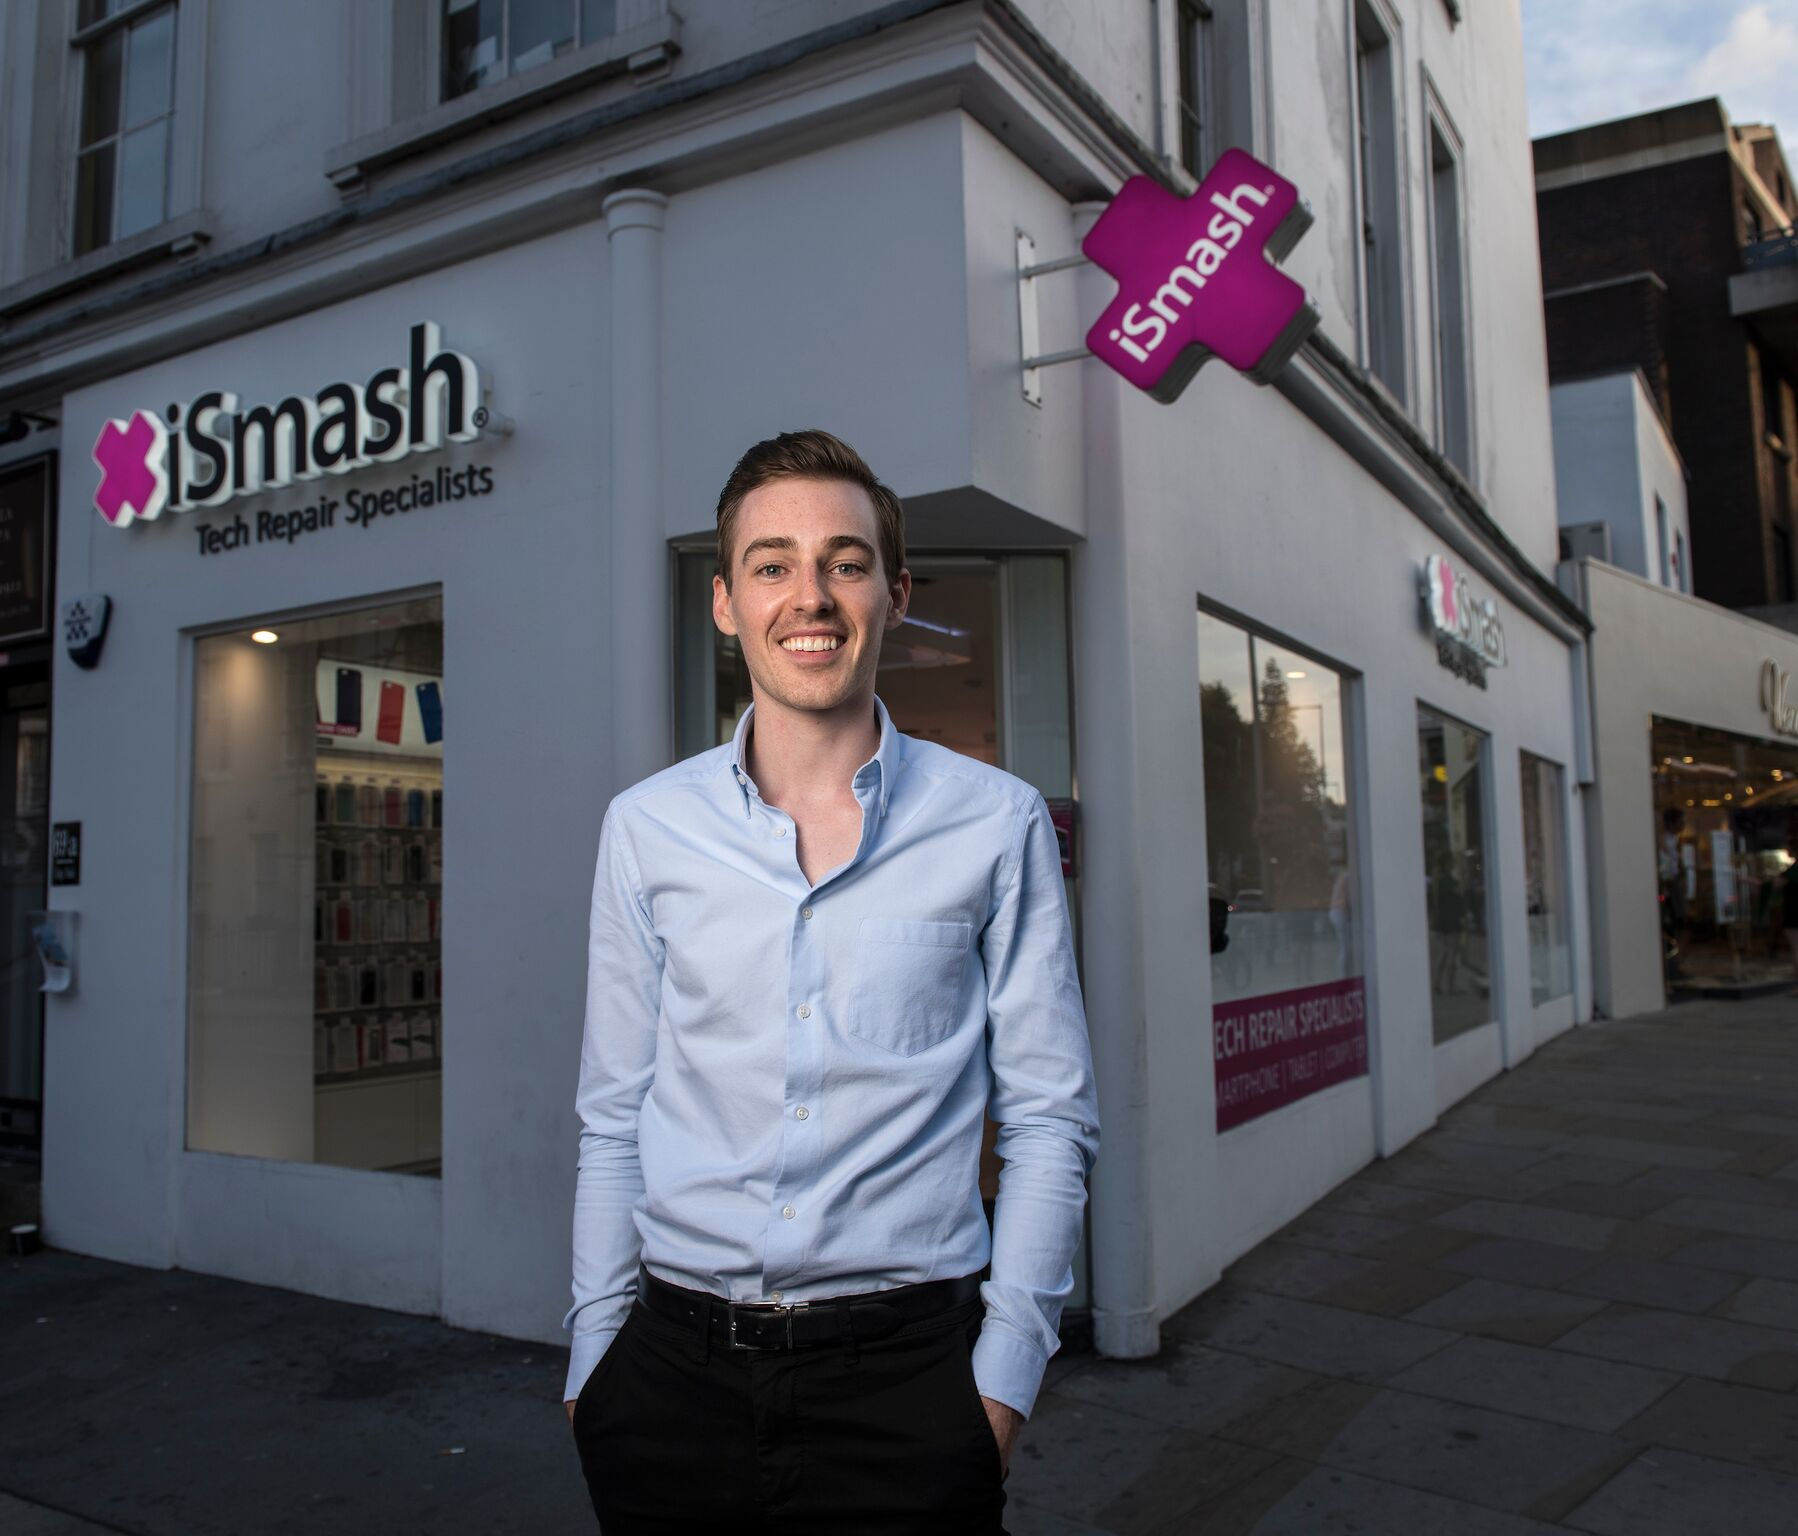 iSmash on rivalling Apple for tech repairs and launching more stores in a dying high street